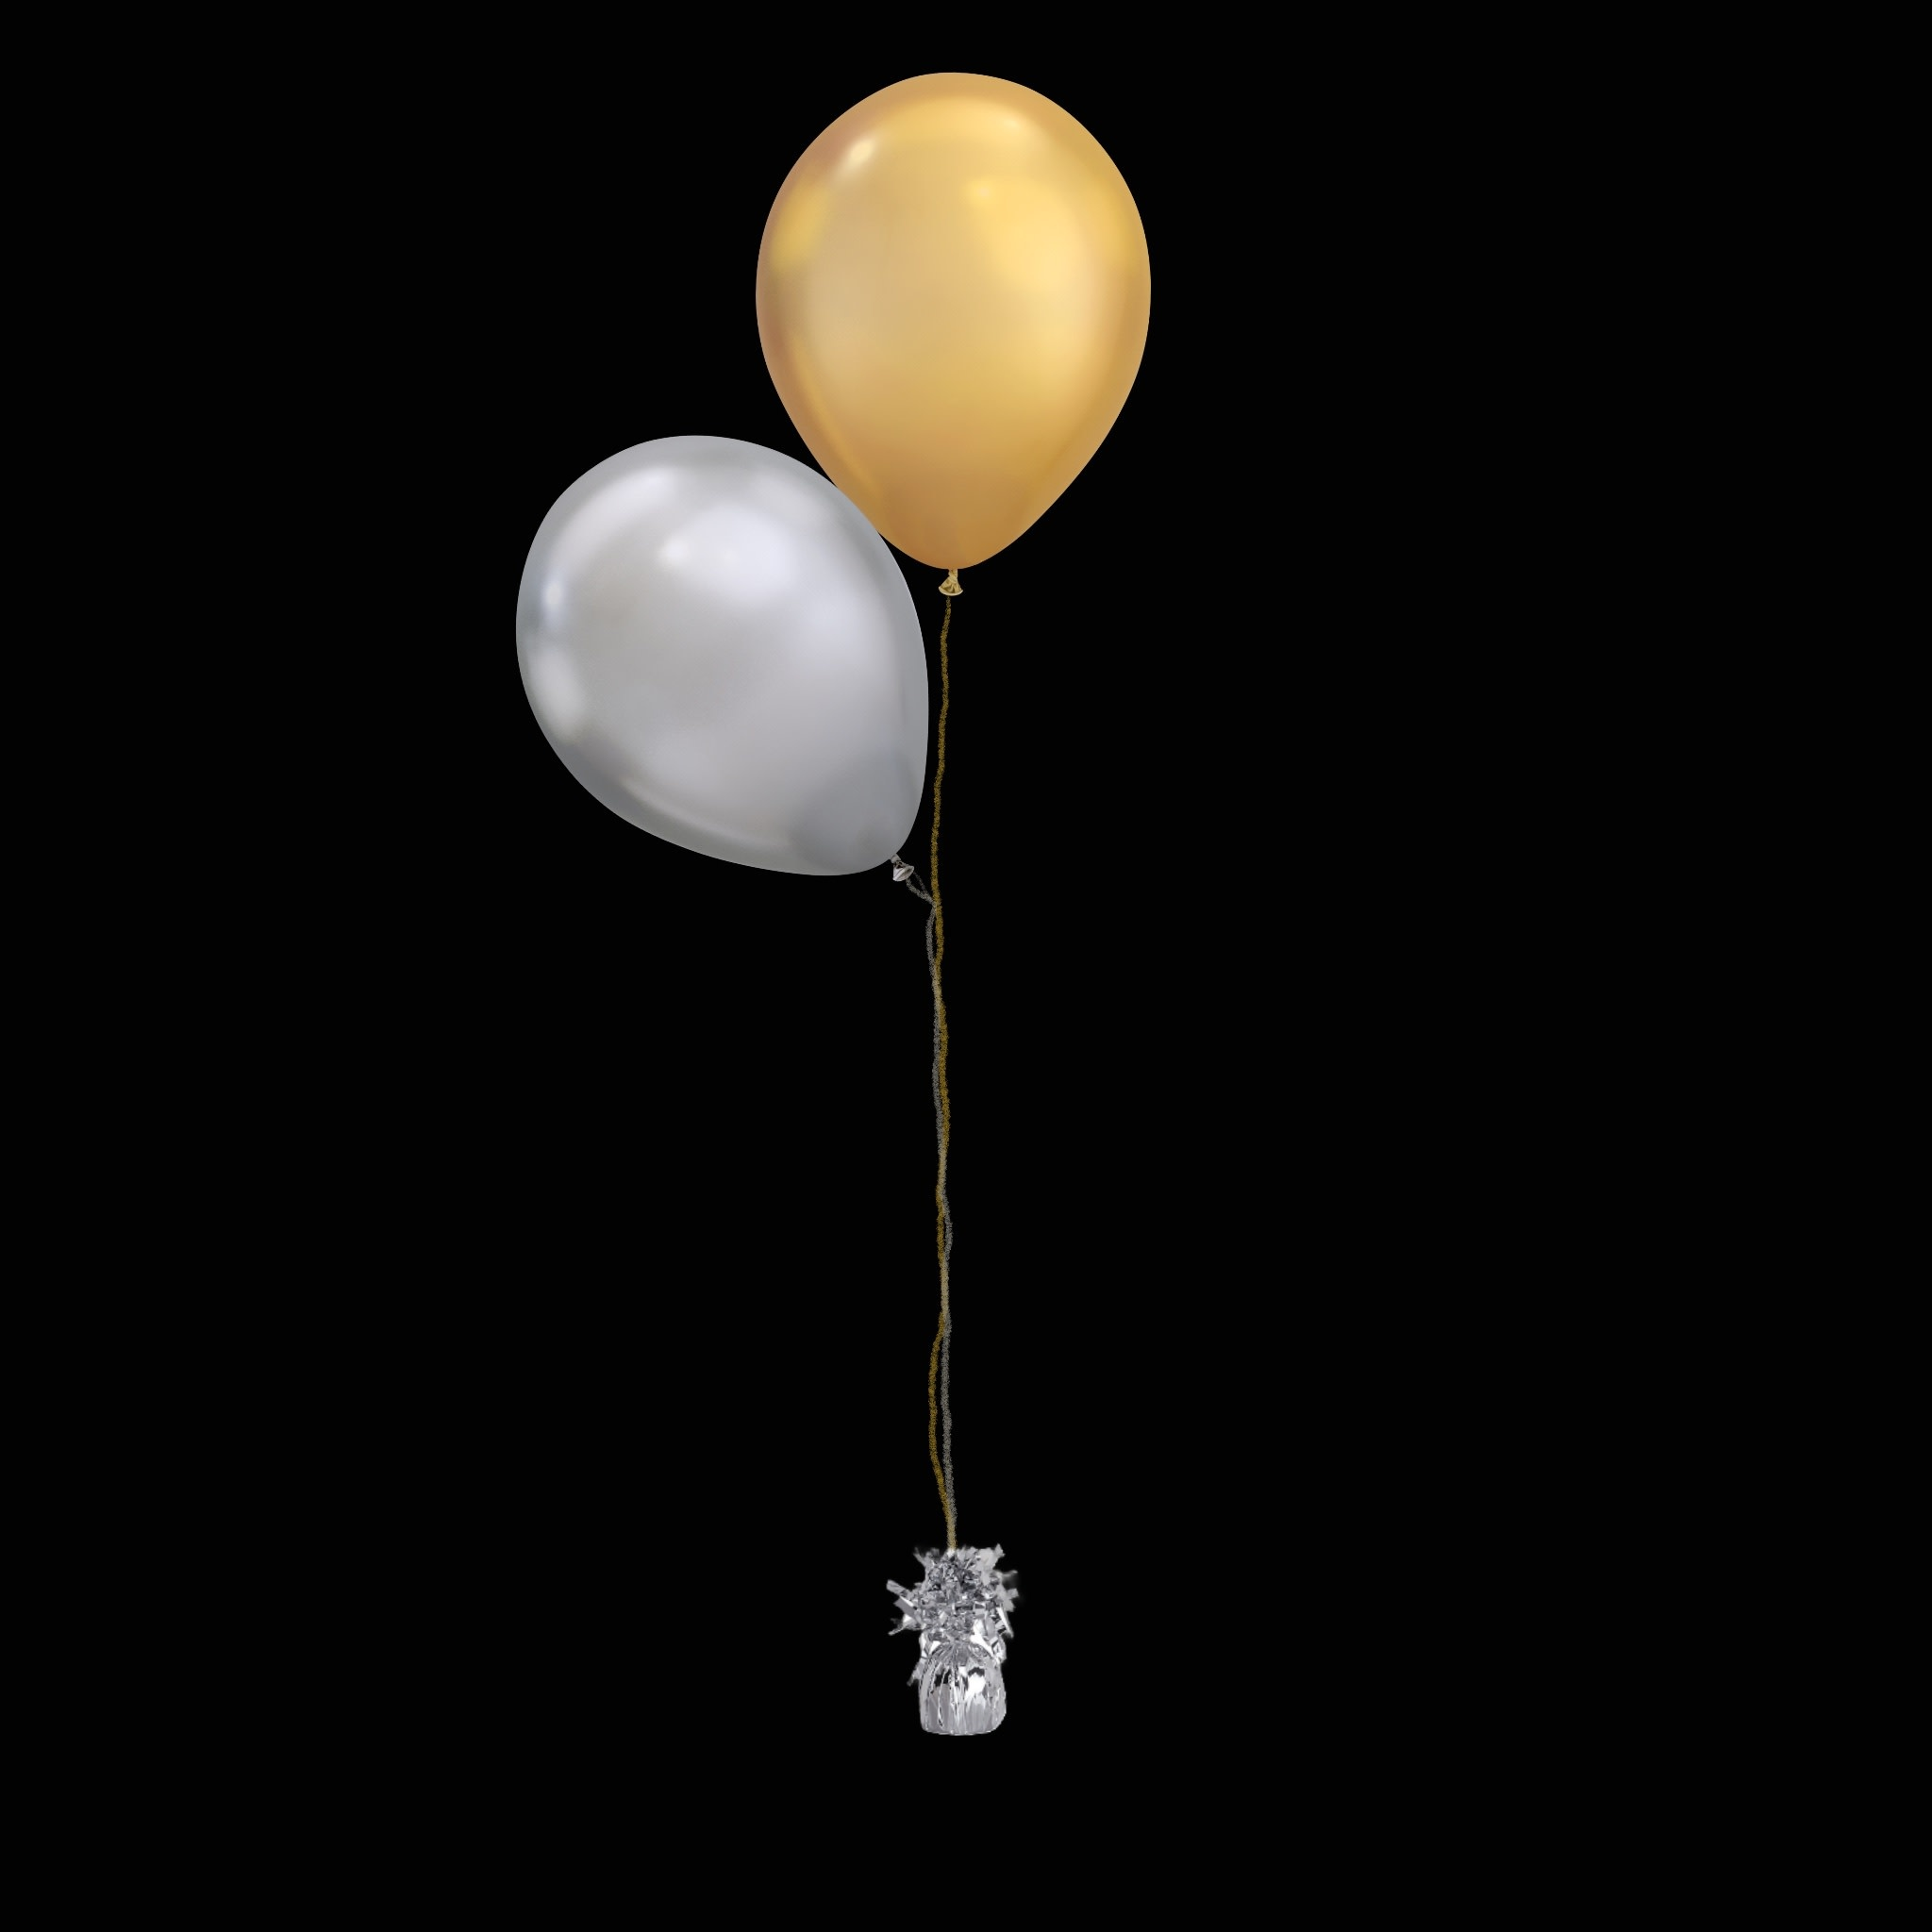 2 Balloons to a Weight Not-Treated